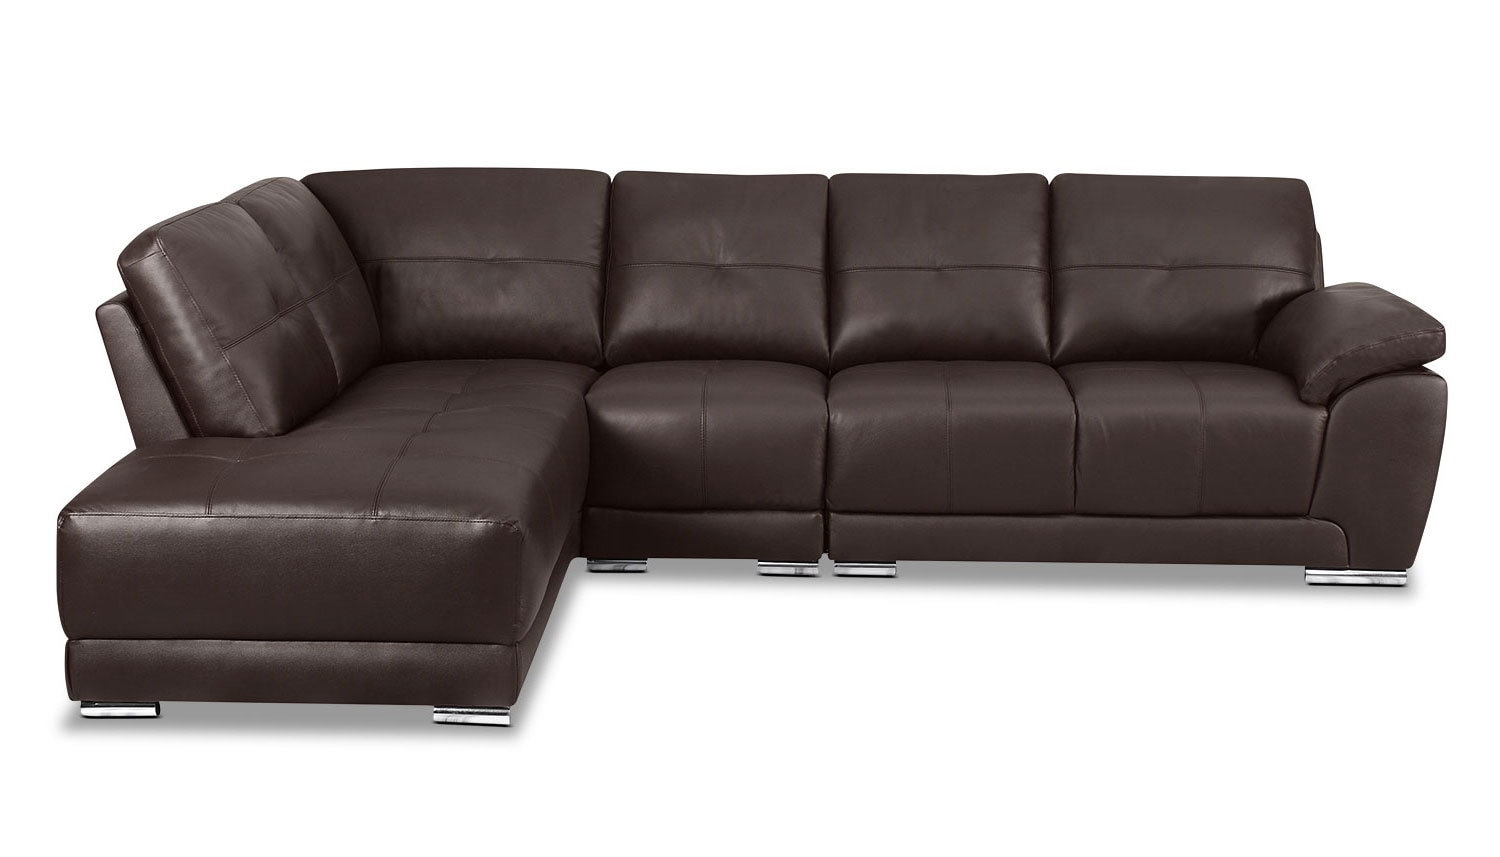 Rylee 3-Piece Genuine Leather Left-Facing Sectional - Brown